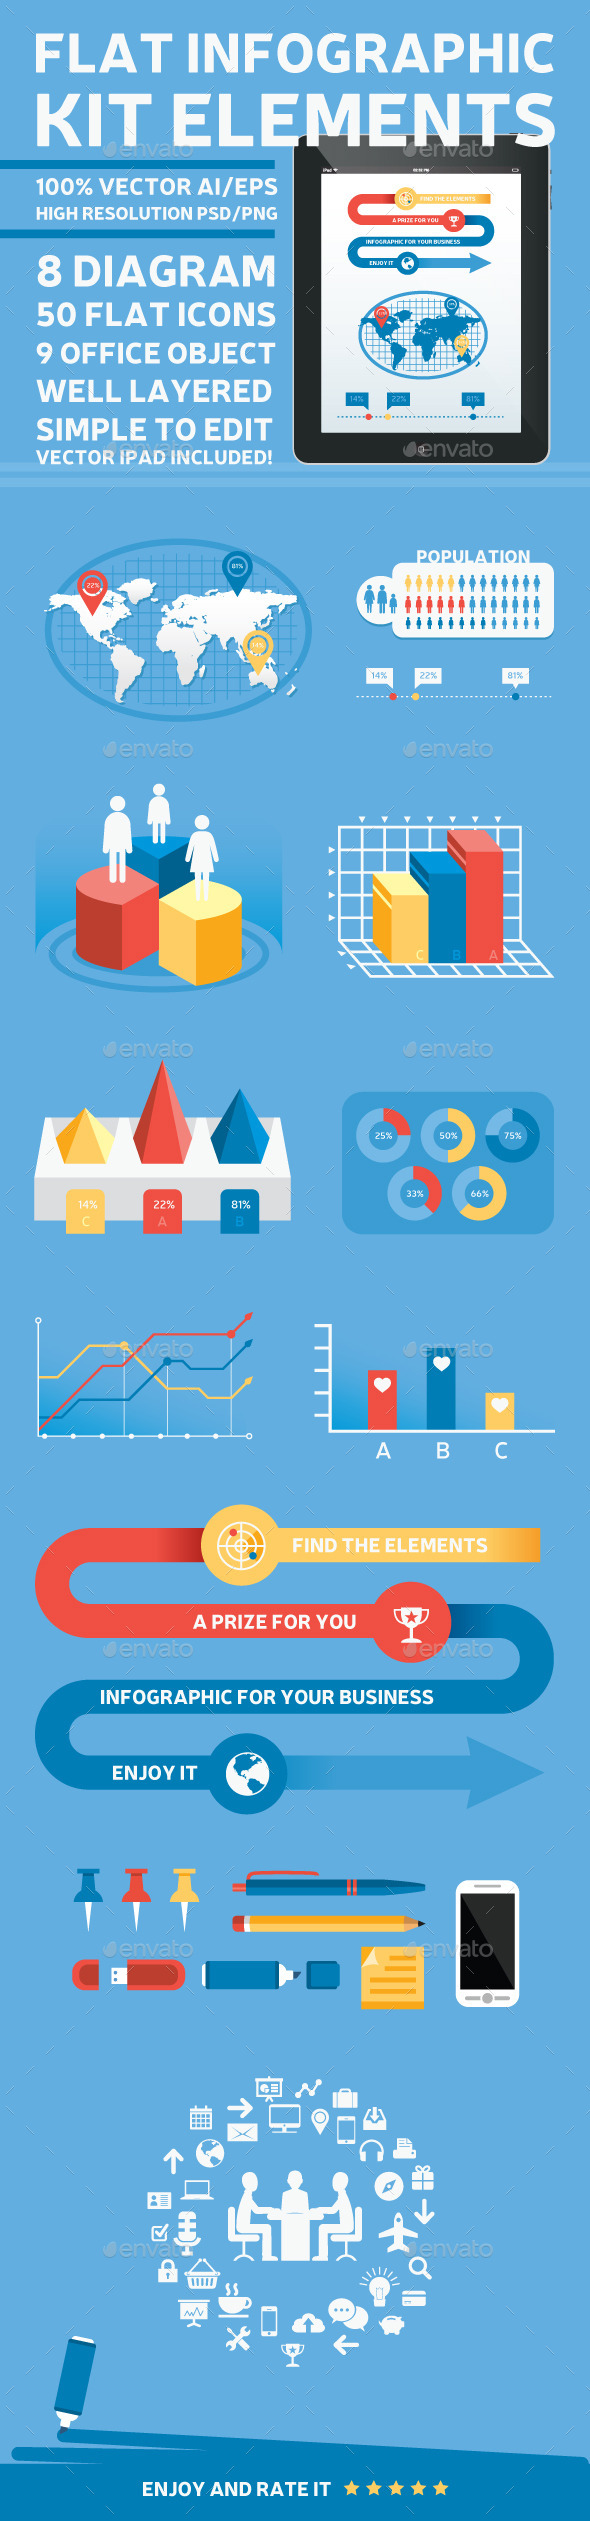 GraphicRiver Flat Infographic Kit Elements 9378963